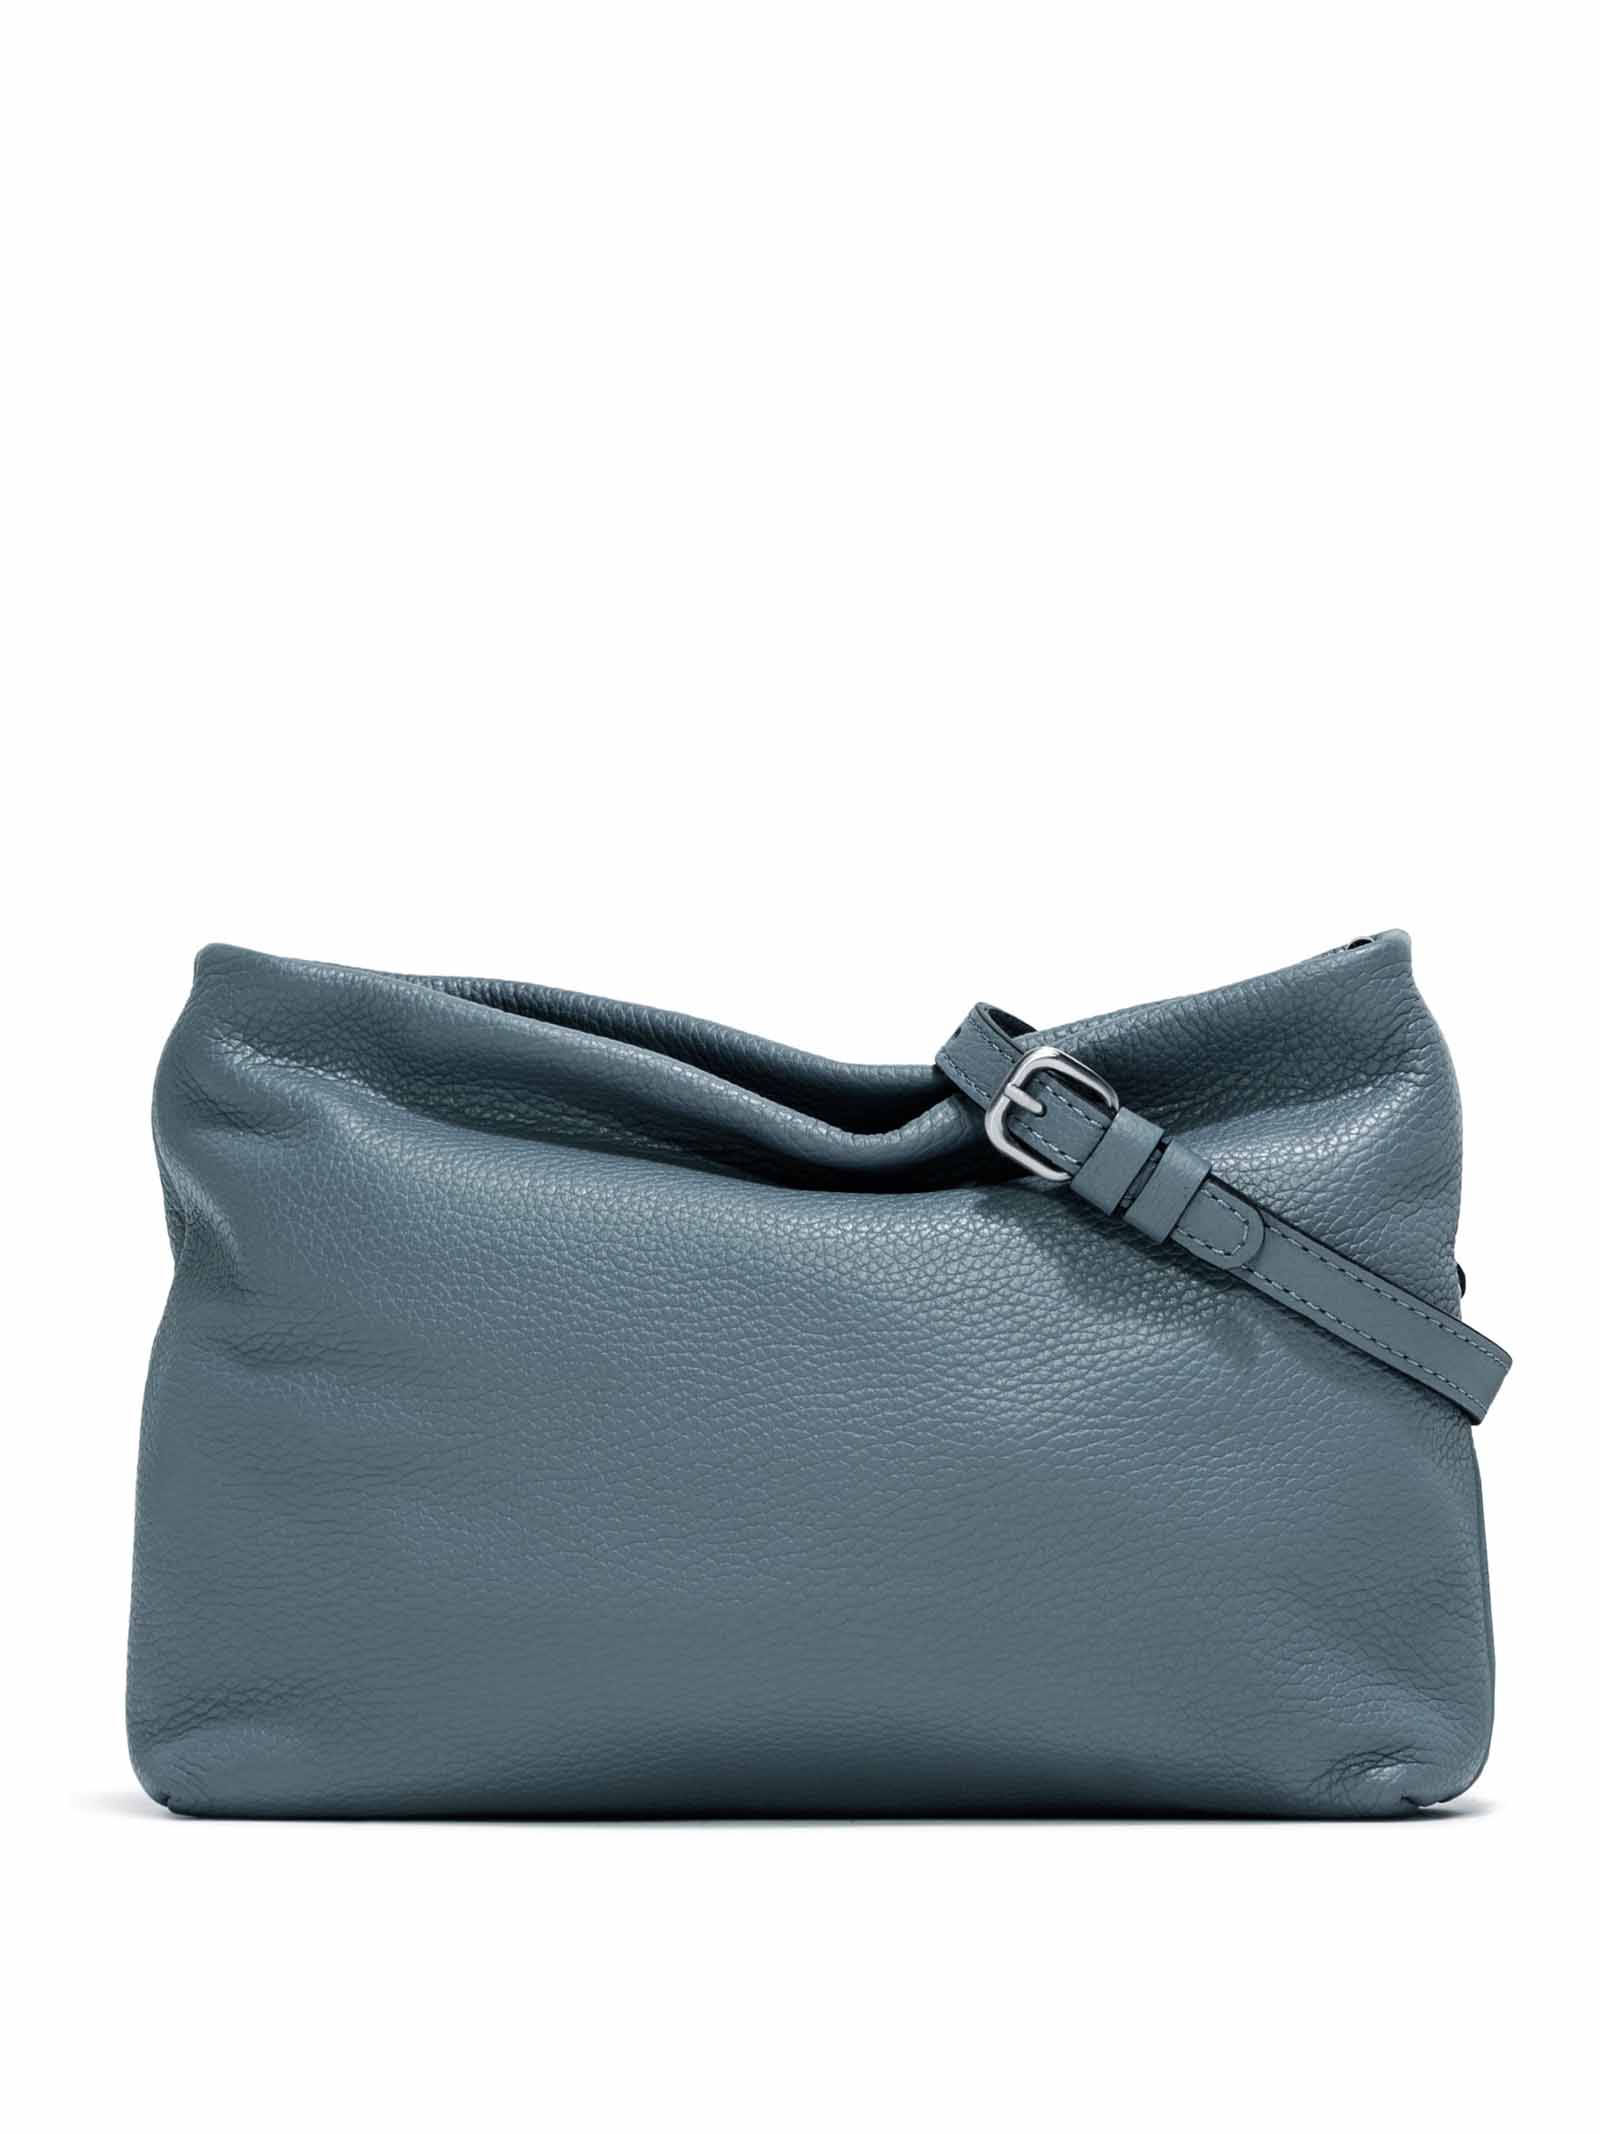 Woman's Shoulder Bag Mini Brenda In Blue Leather With Color Matched Chain And Adjustable And Detachable Cross-body Strap Gianni Chiarini   Bags and backpacks   BS826512064